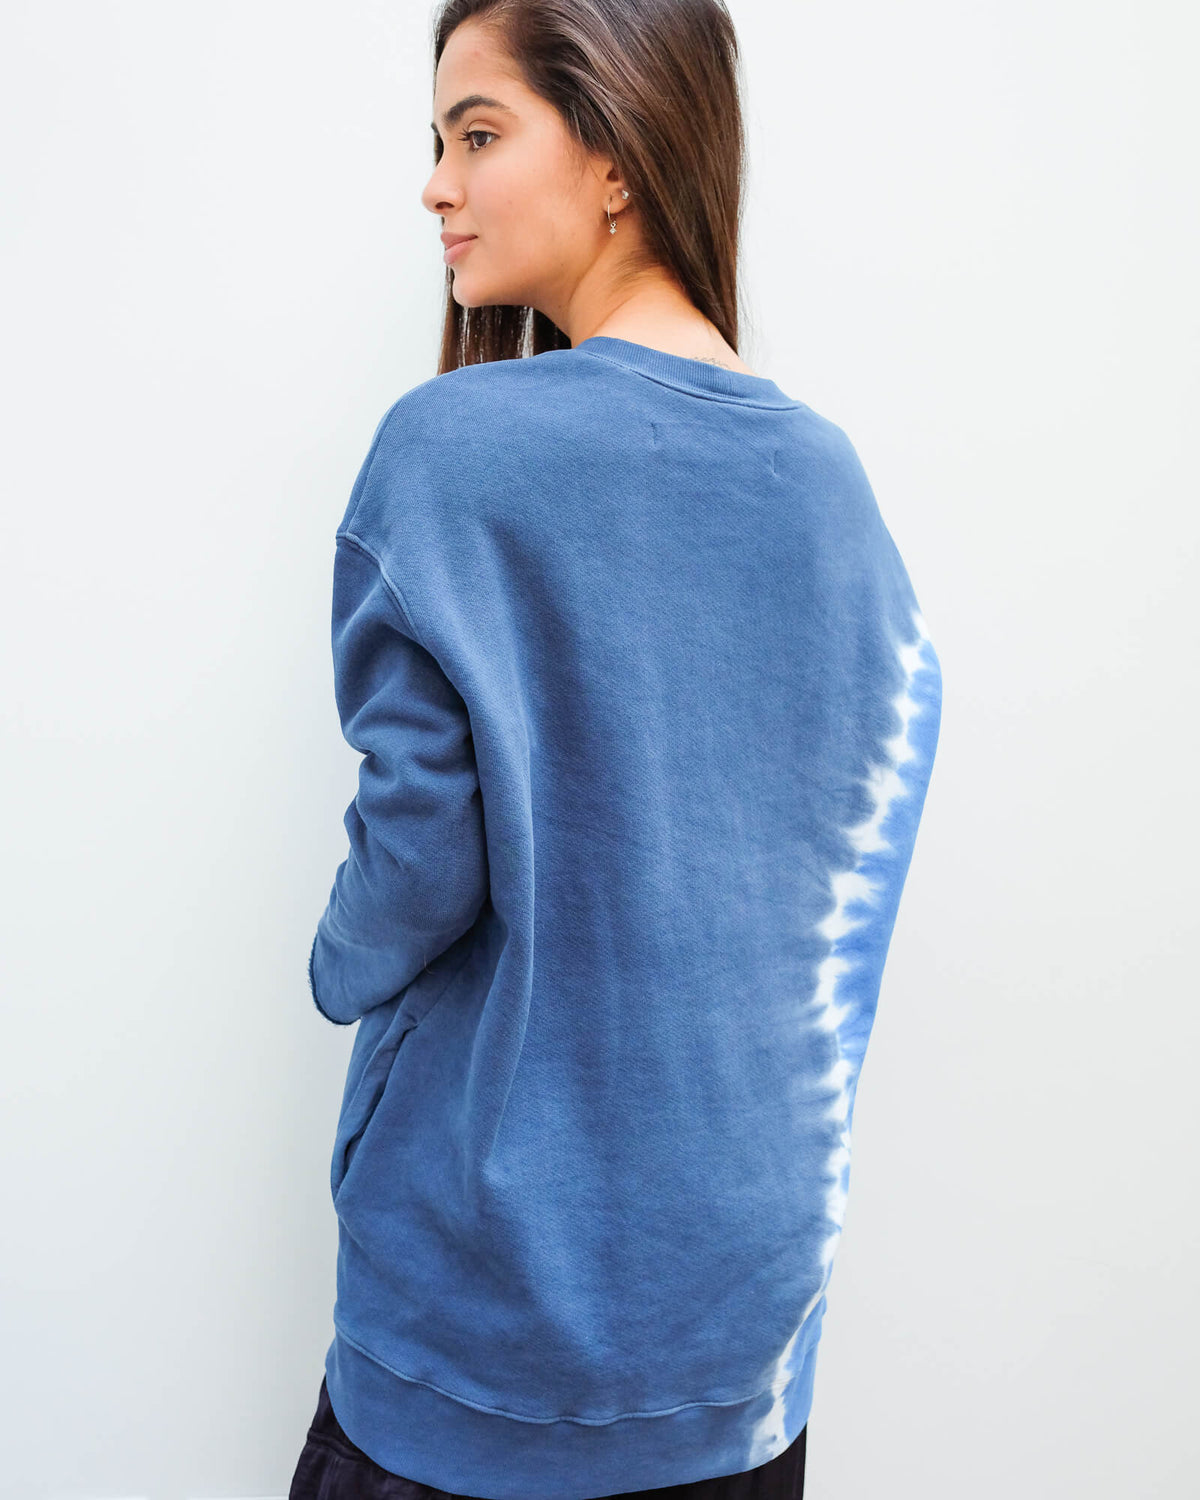 RA 4022 Oversized tie dye sweatshirt in sky